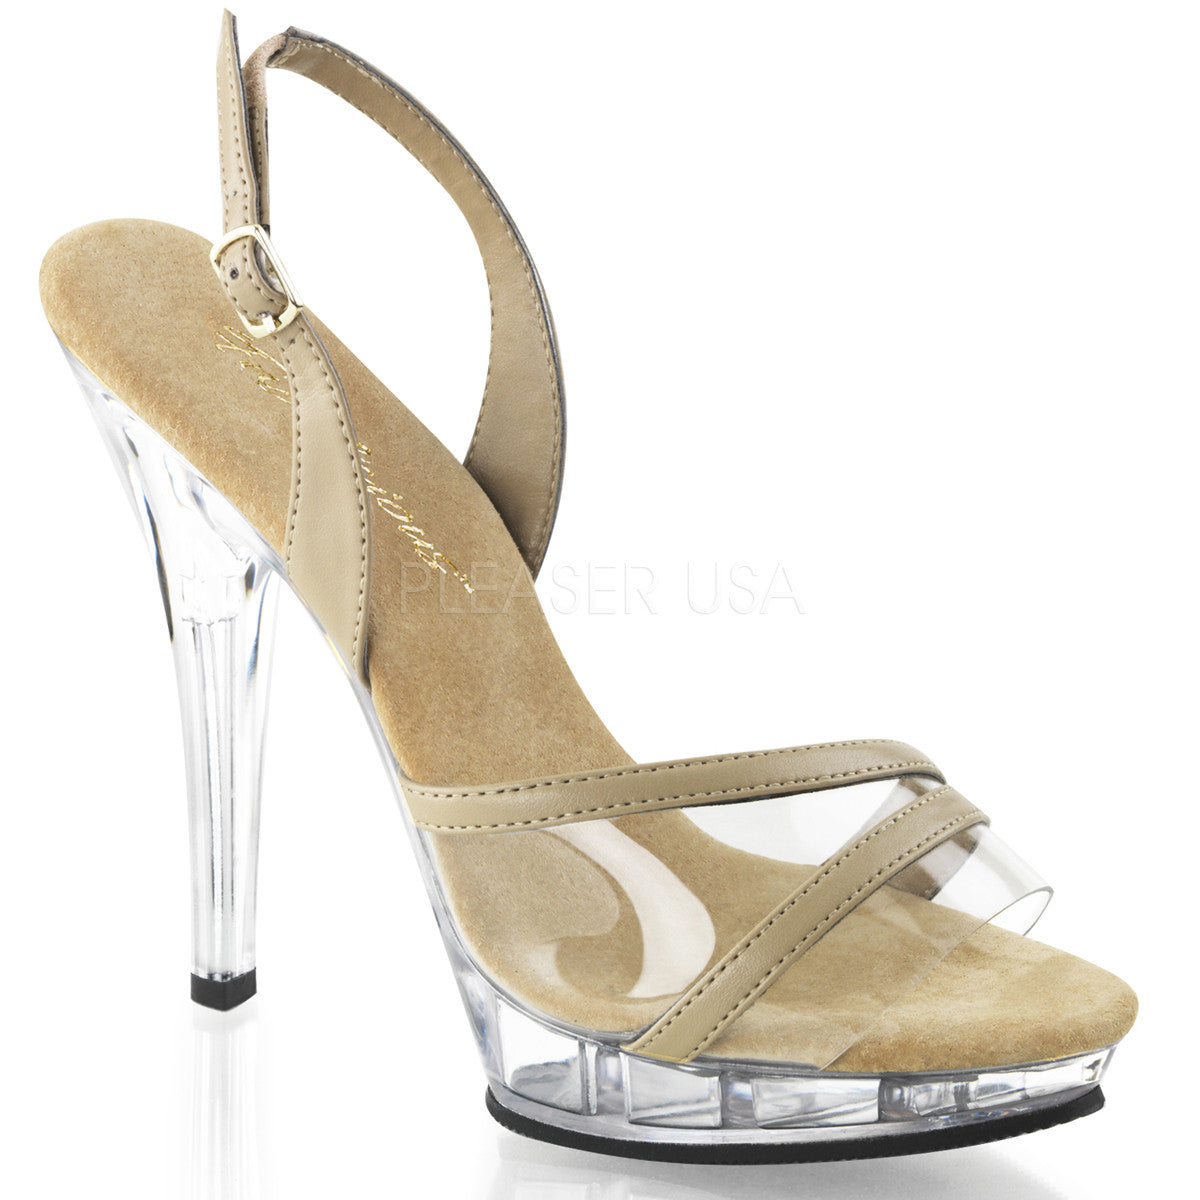 Fabulicious LIP-137 Taupe Pu-Clear Sling Back Sandals - Shoecup.com